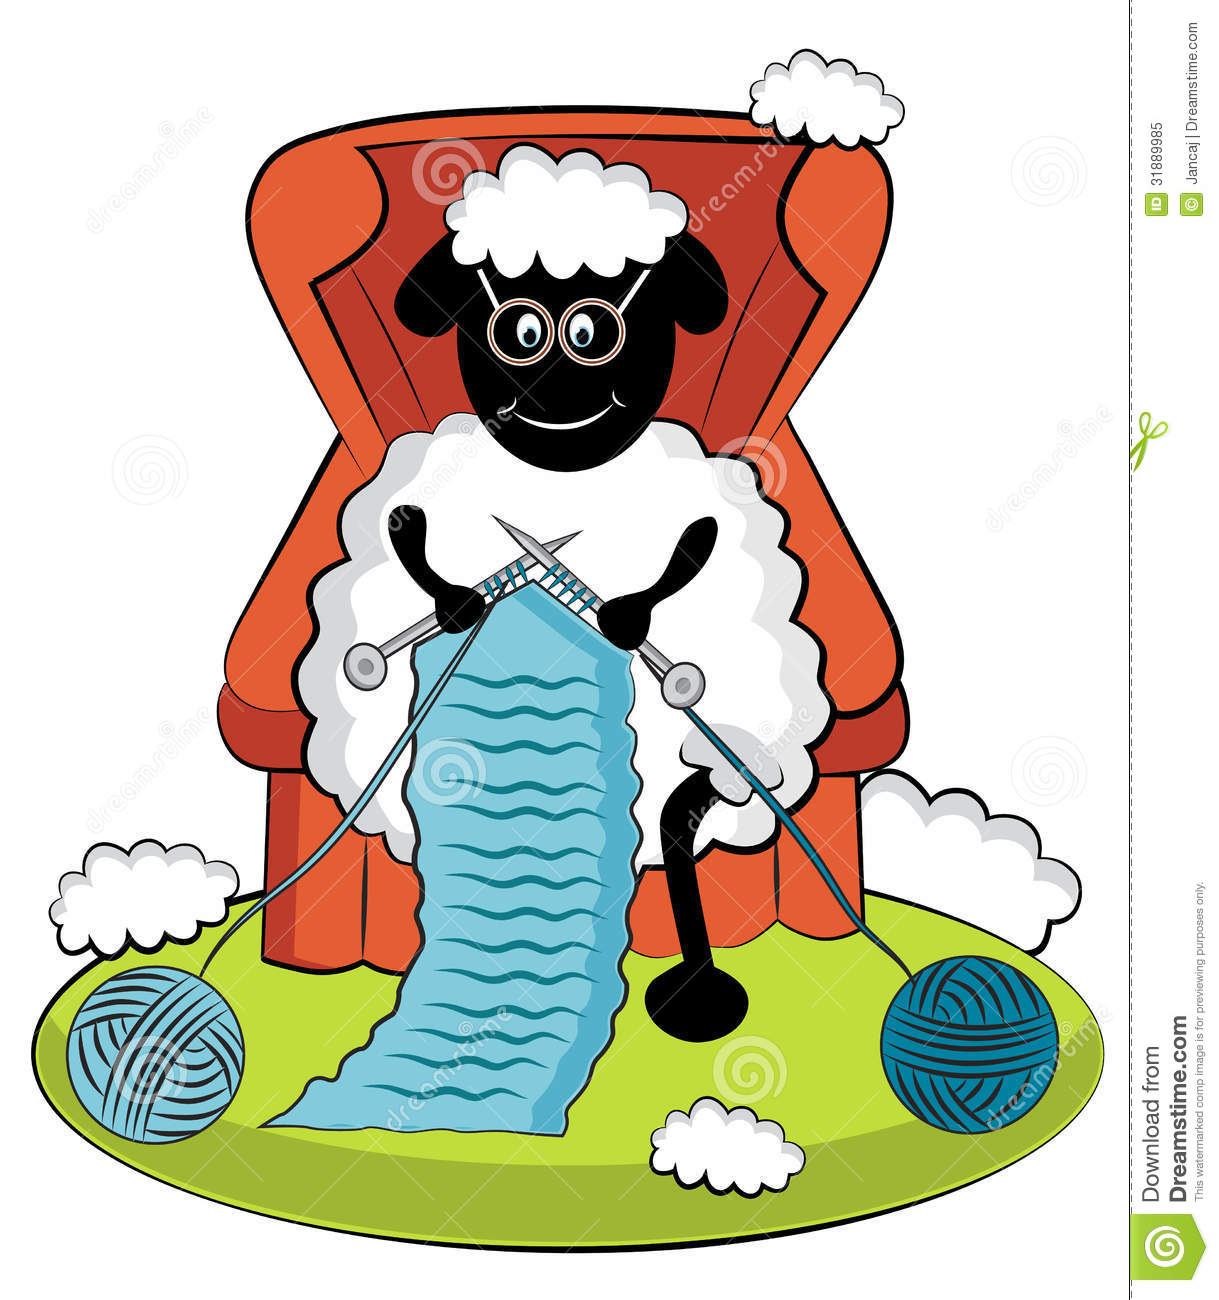 Free Knitting Icons Clipart : Knitting cartoon sheep stock illustration image of clubs